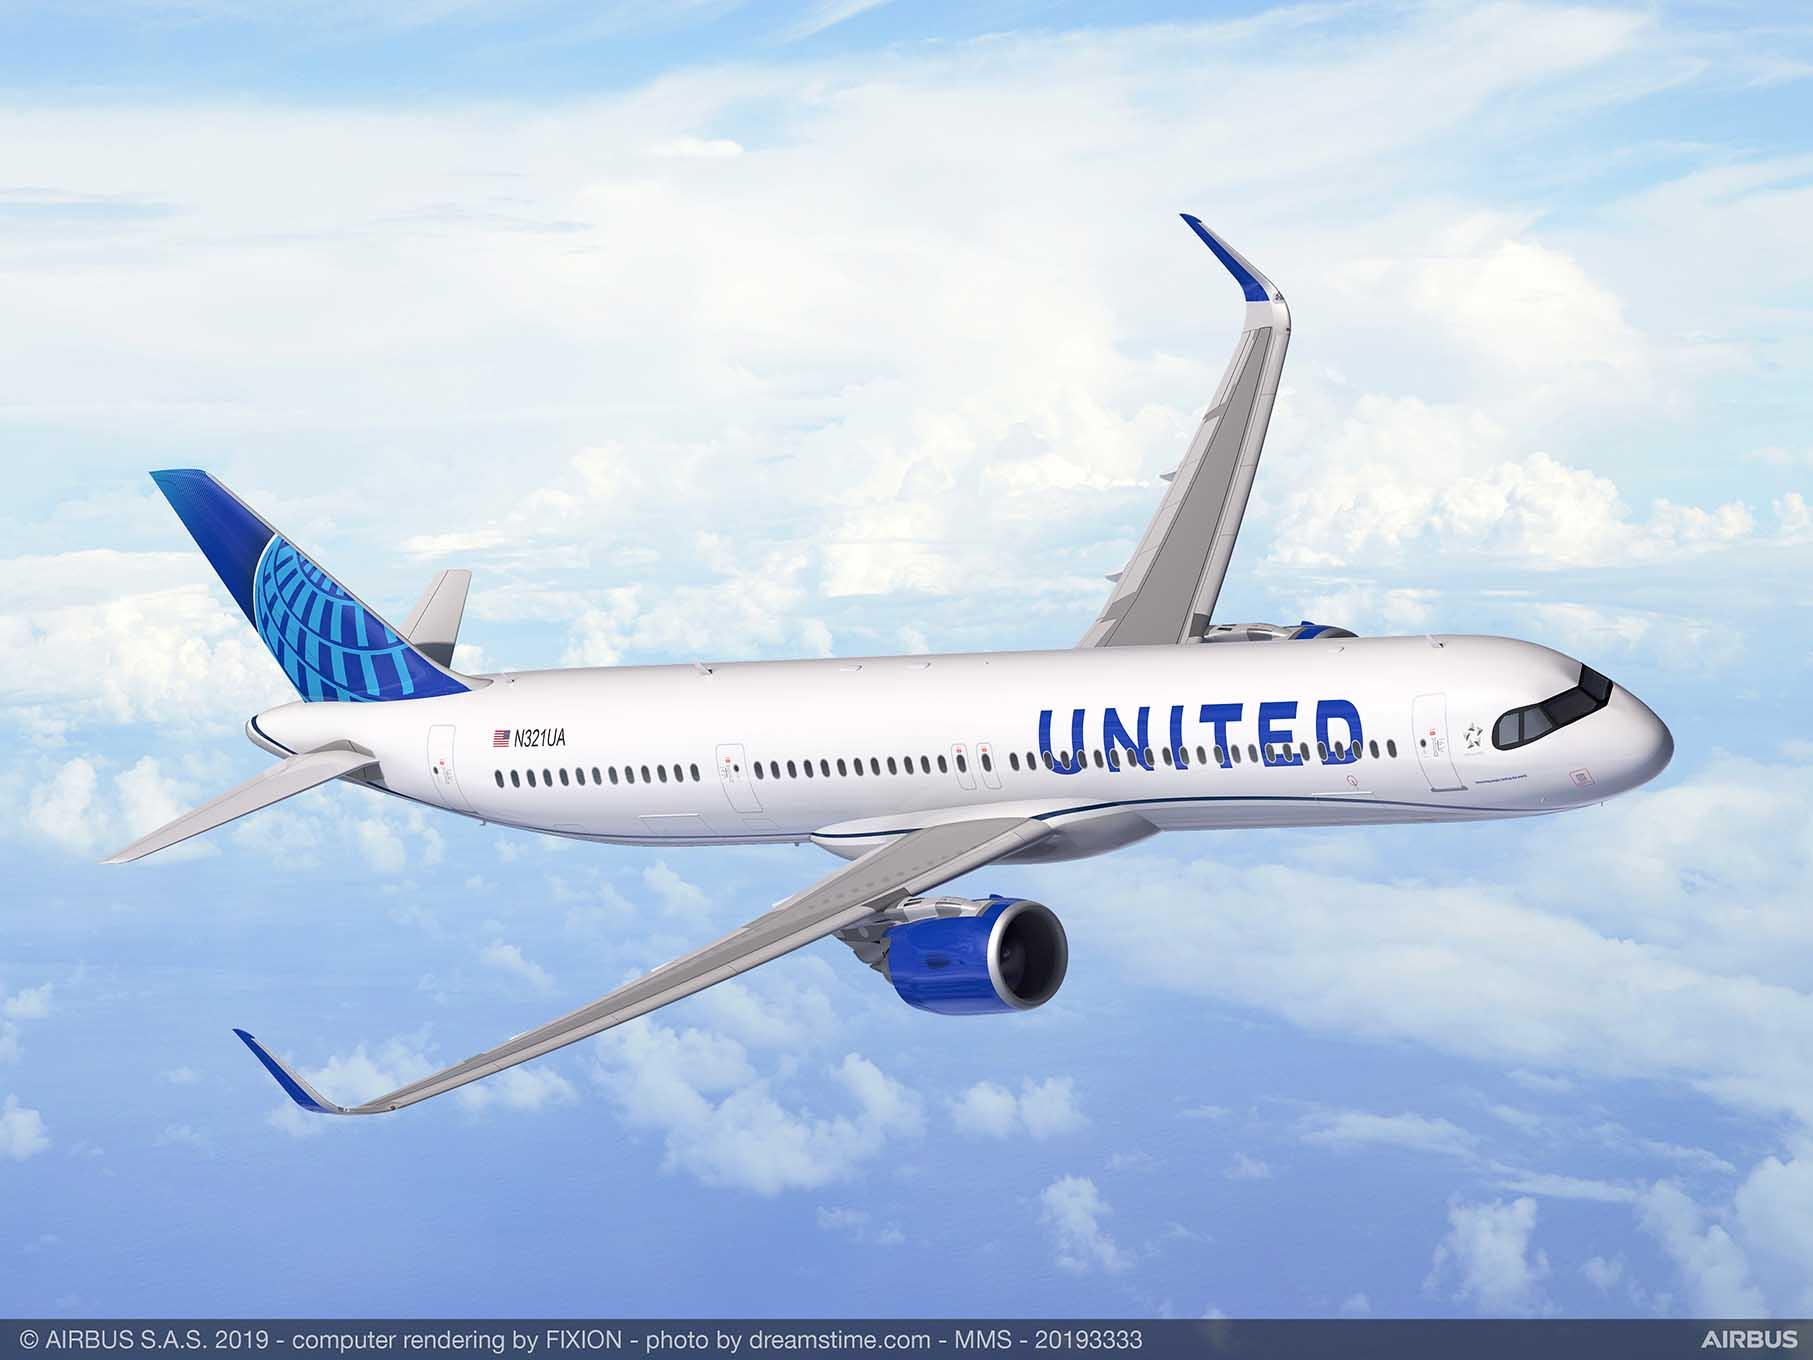 United Airlines commande 50 Airbus A321